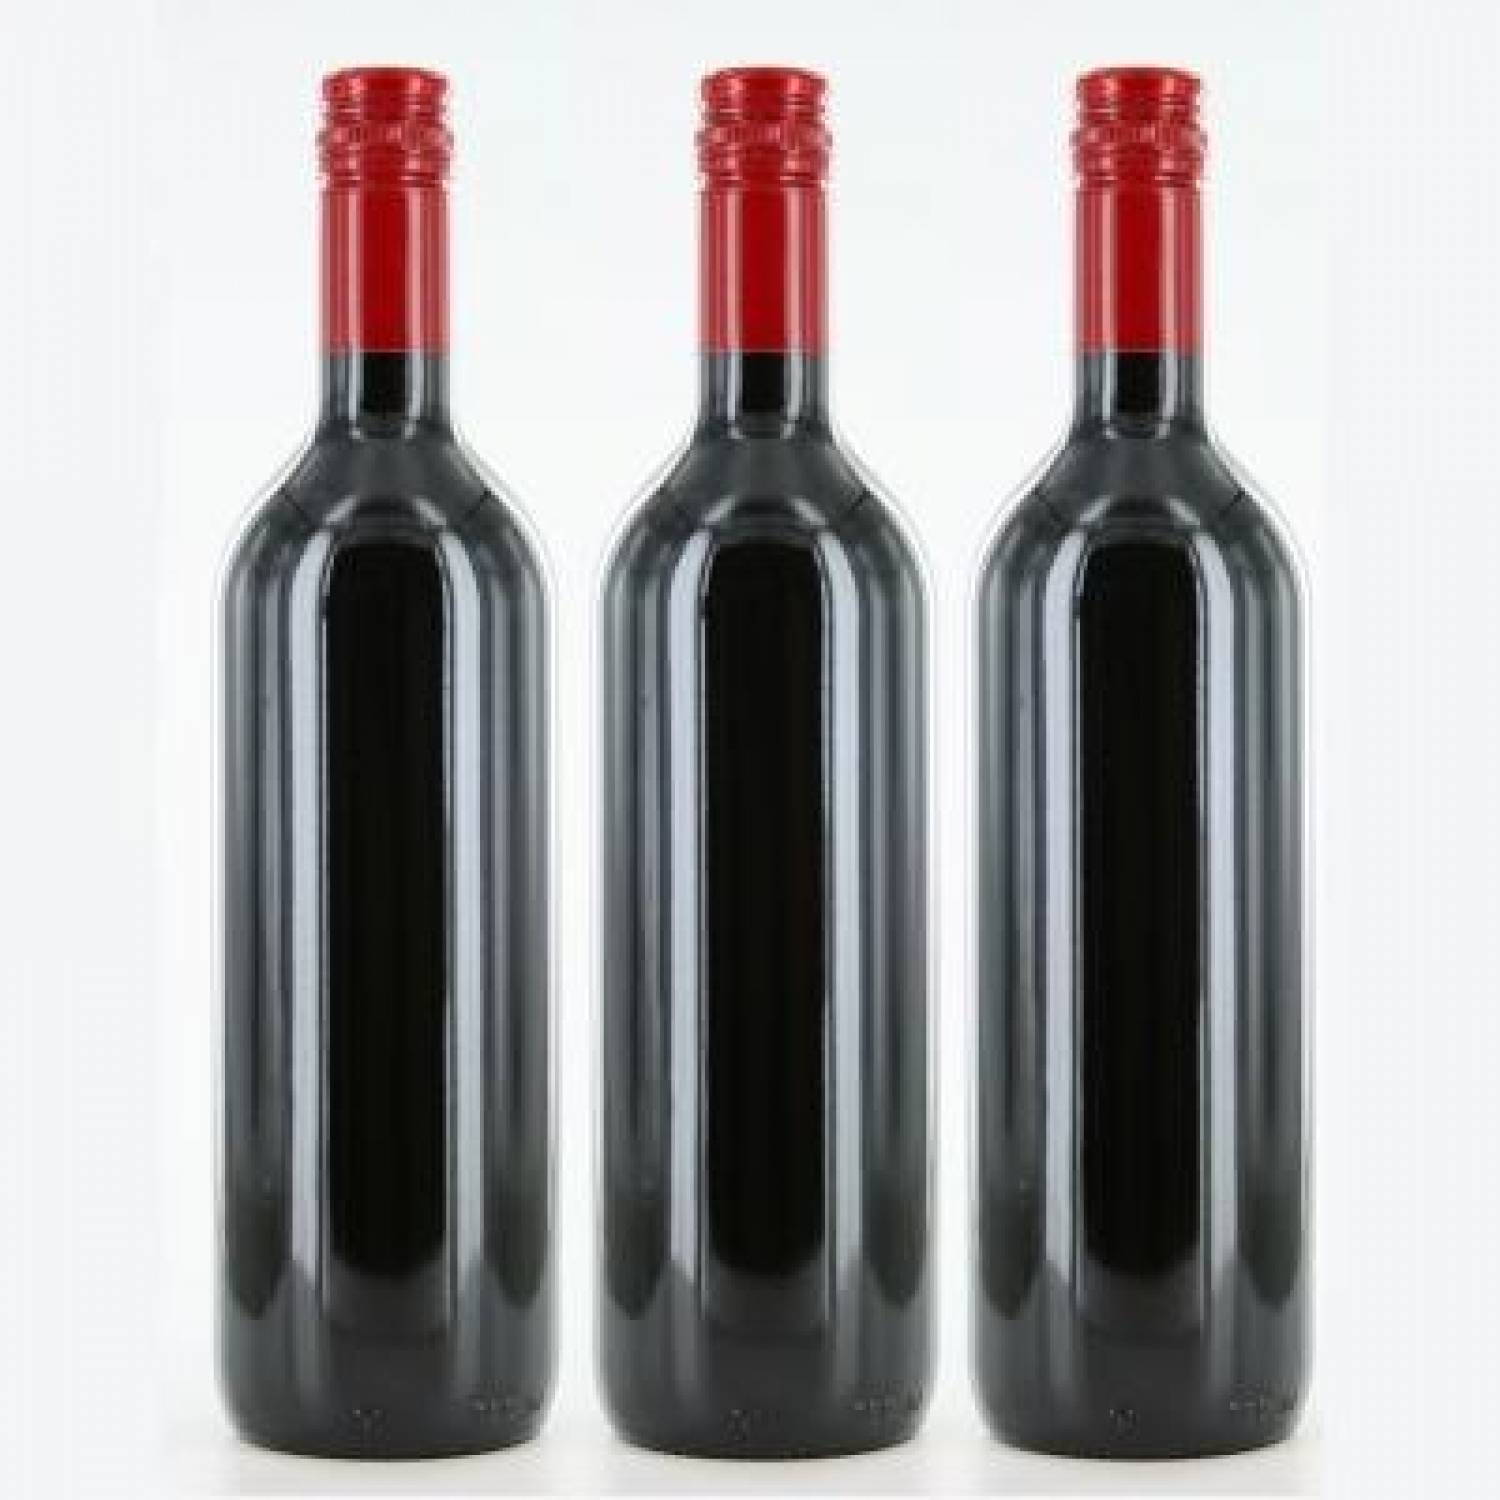 Red wine purchase with your own personalized wine label ...